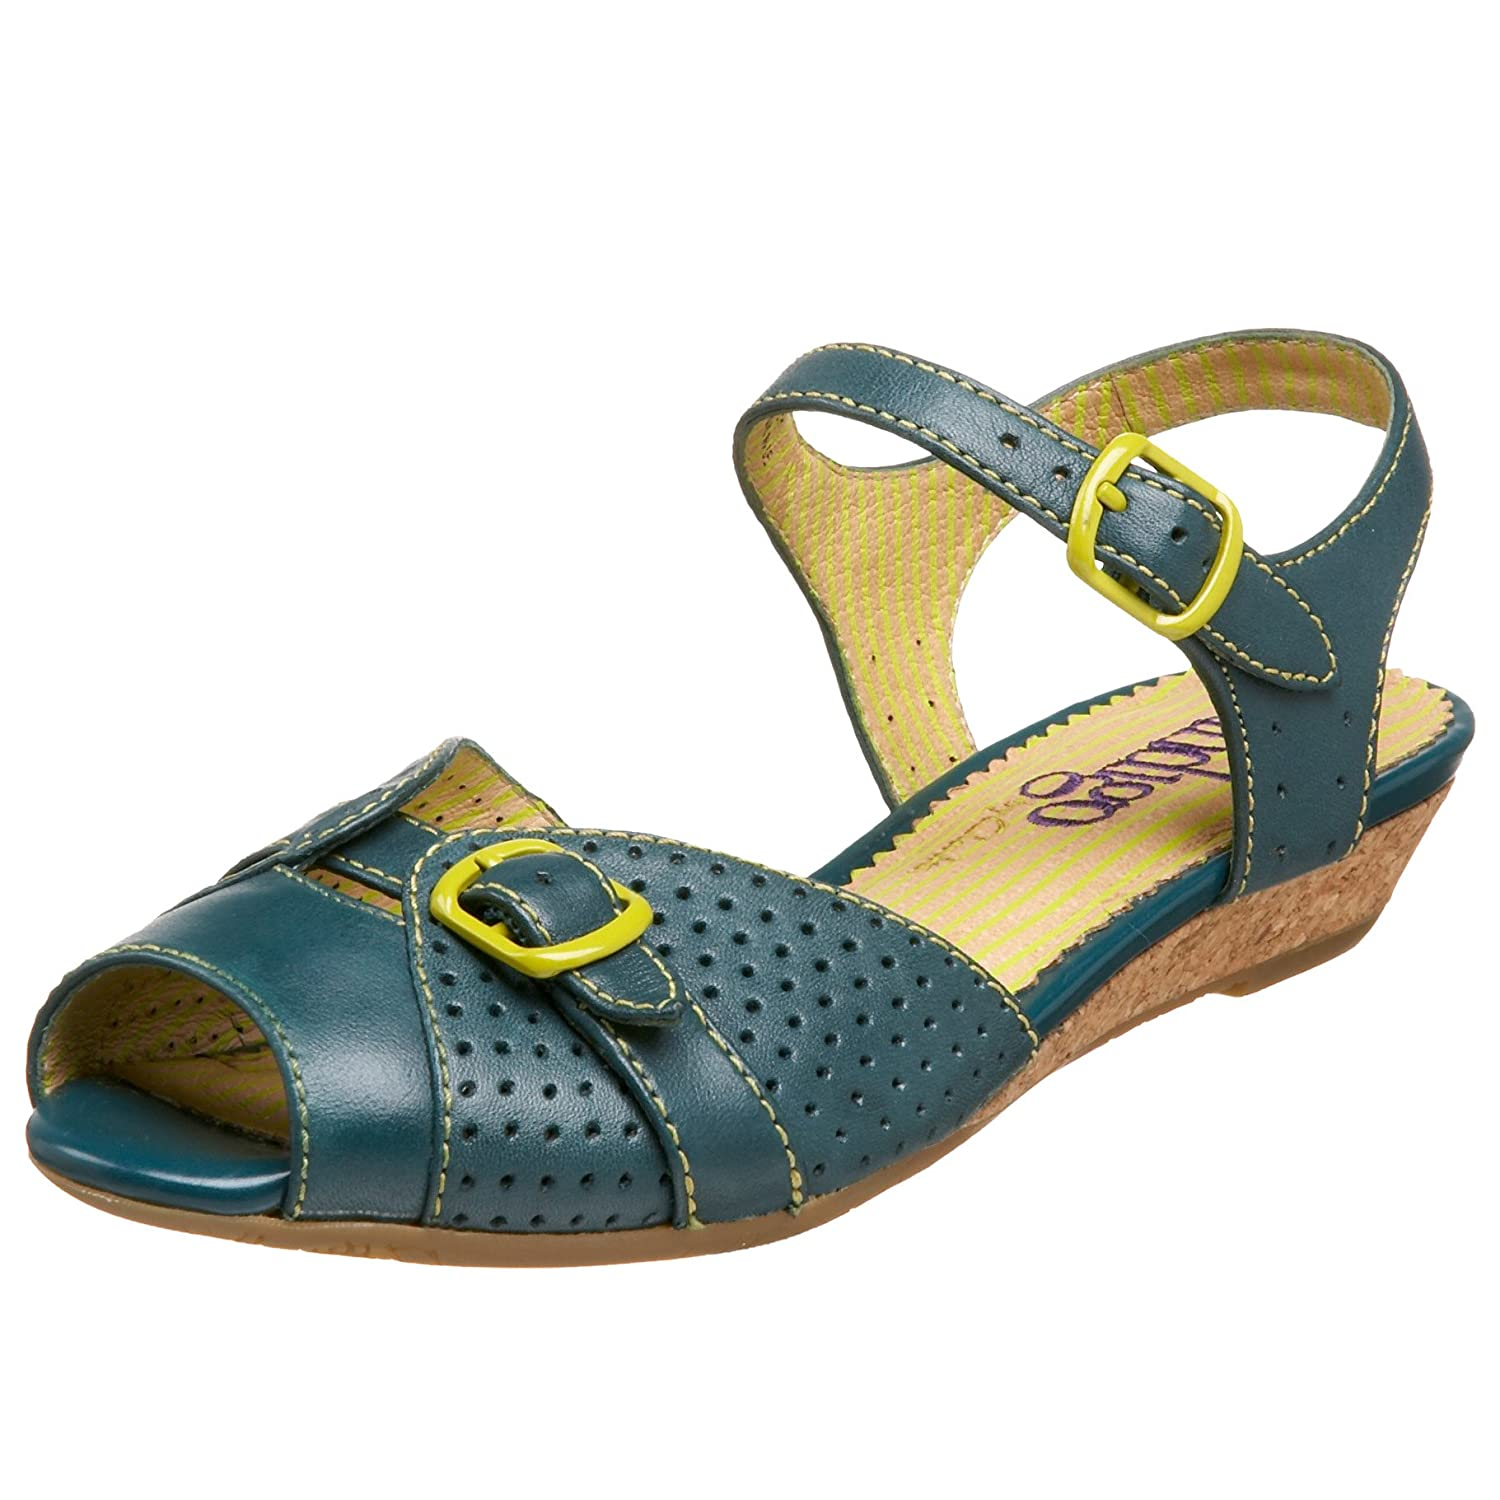 Indigo By Clarks Women's Gelato Sandal - Free Overnight Shipping & Return Shipping: Endless.com from endless.com